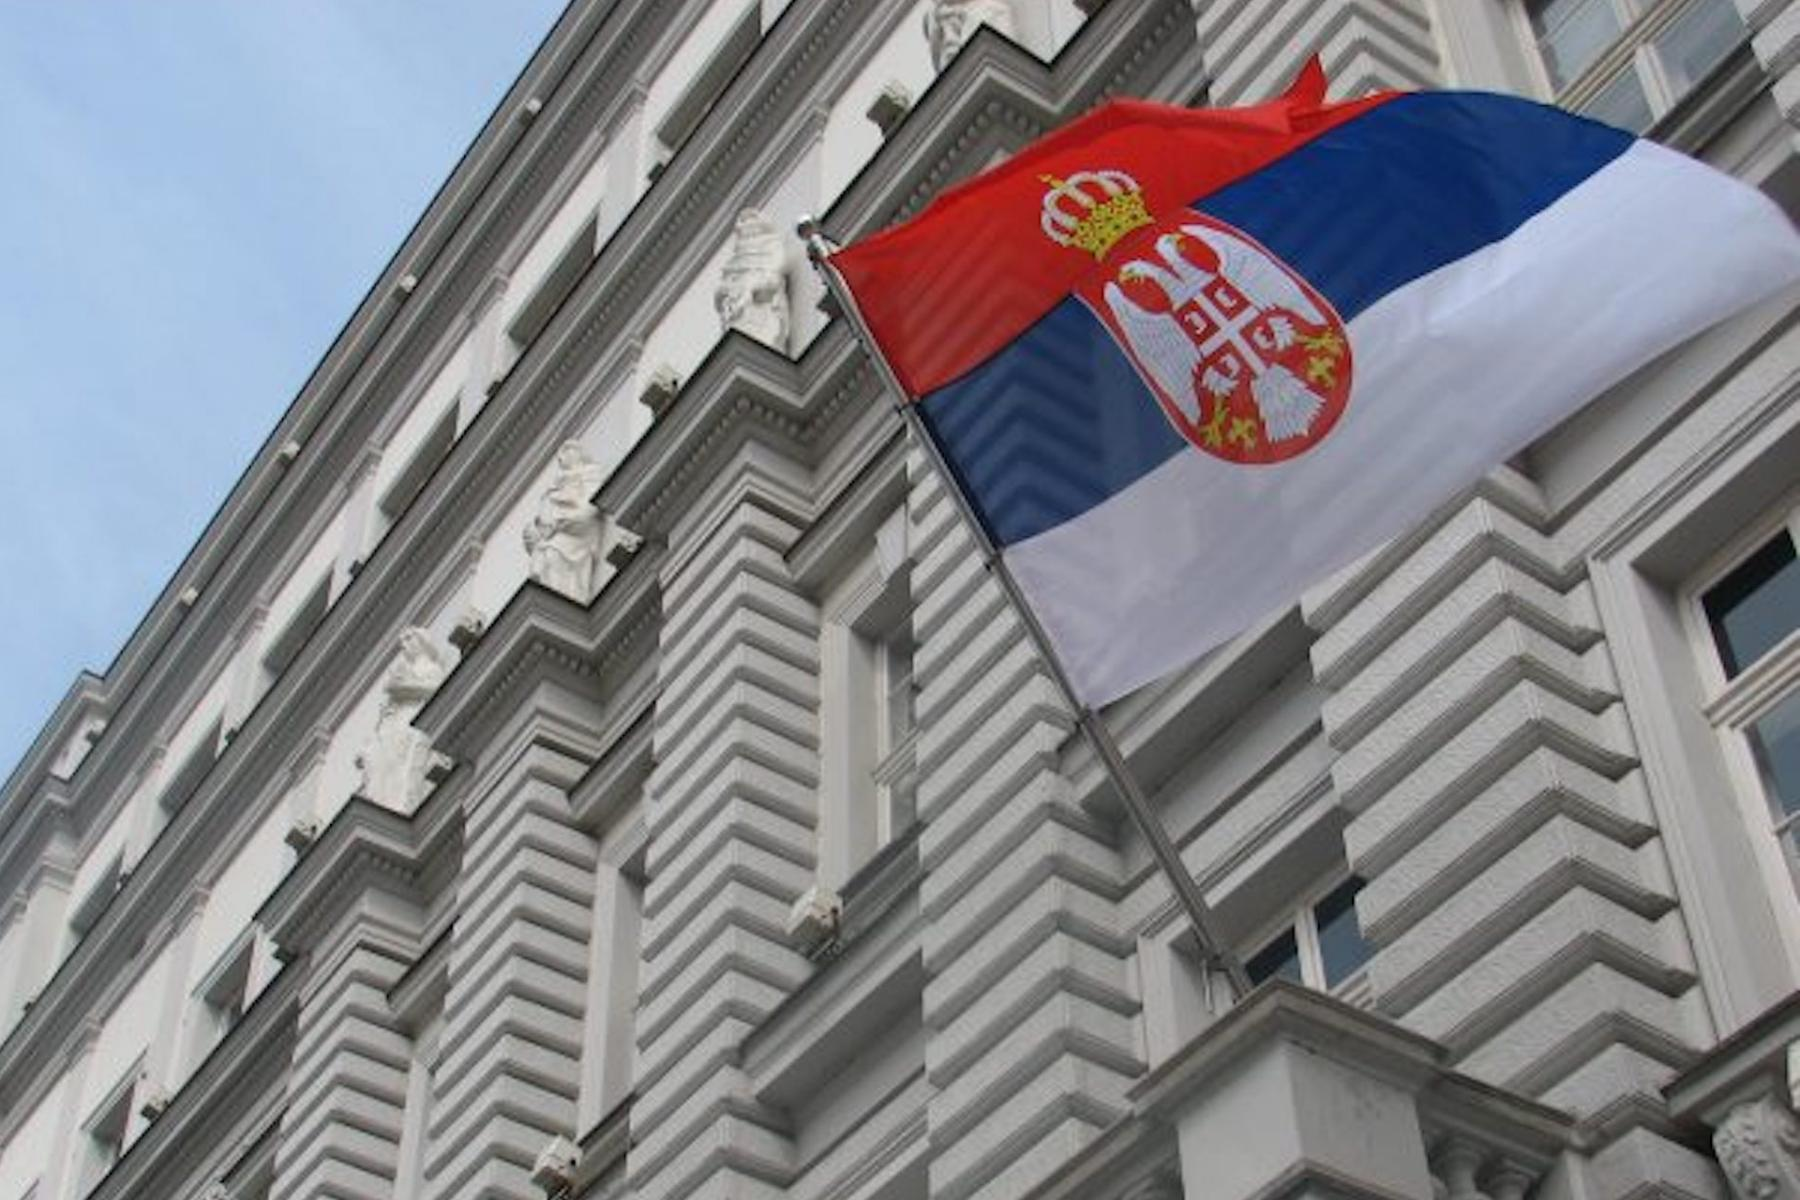 OCCRP Concerned by Serbian Government's Selective Inquiry into Investigative Journalism Outlets and Civil Society Organizations